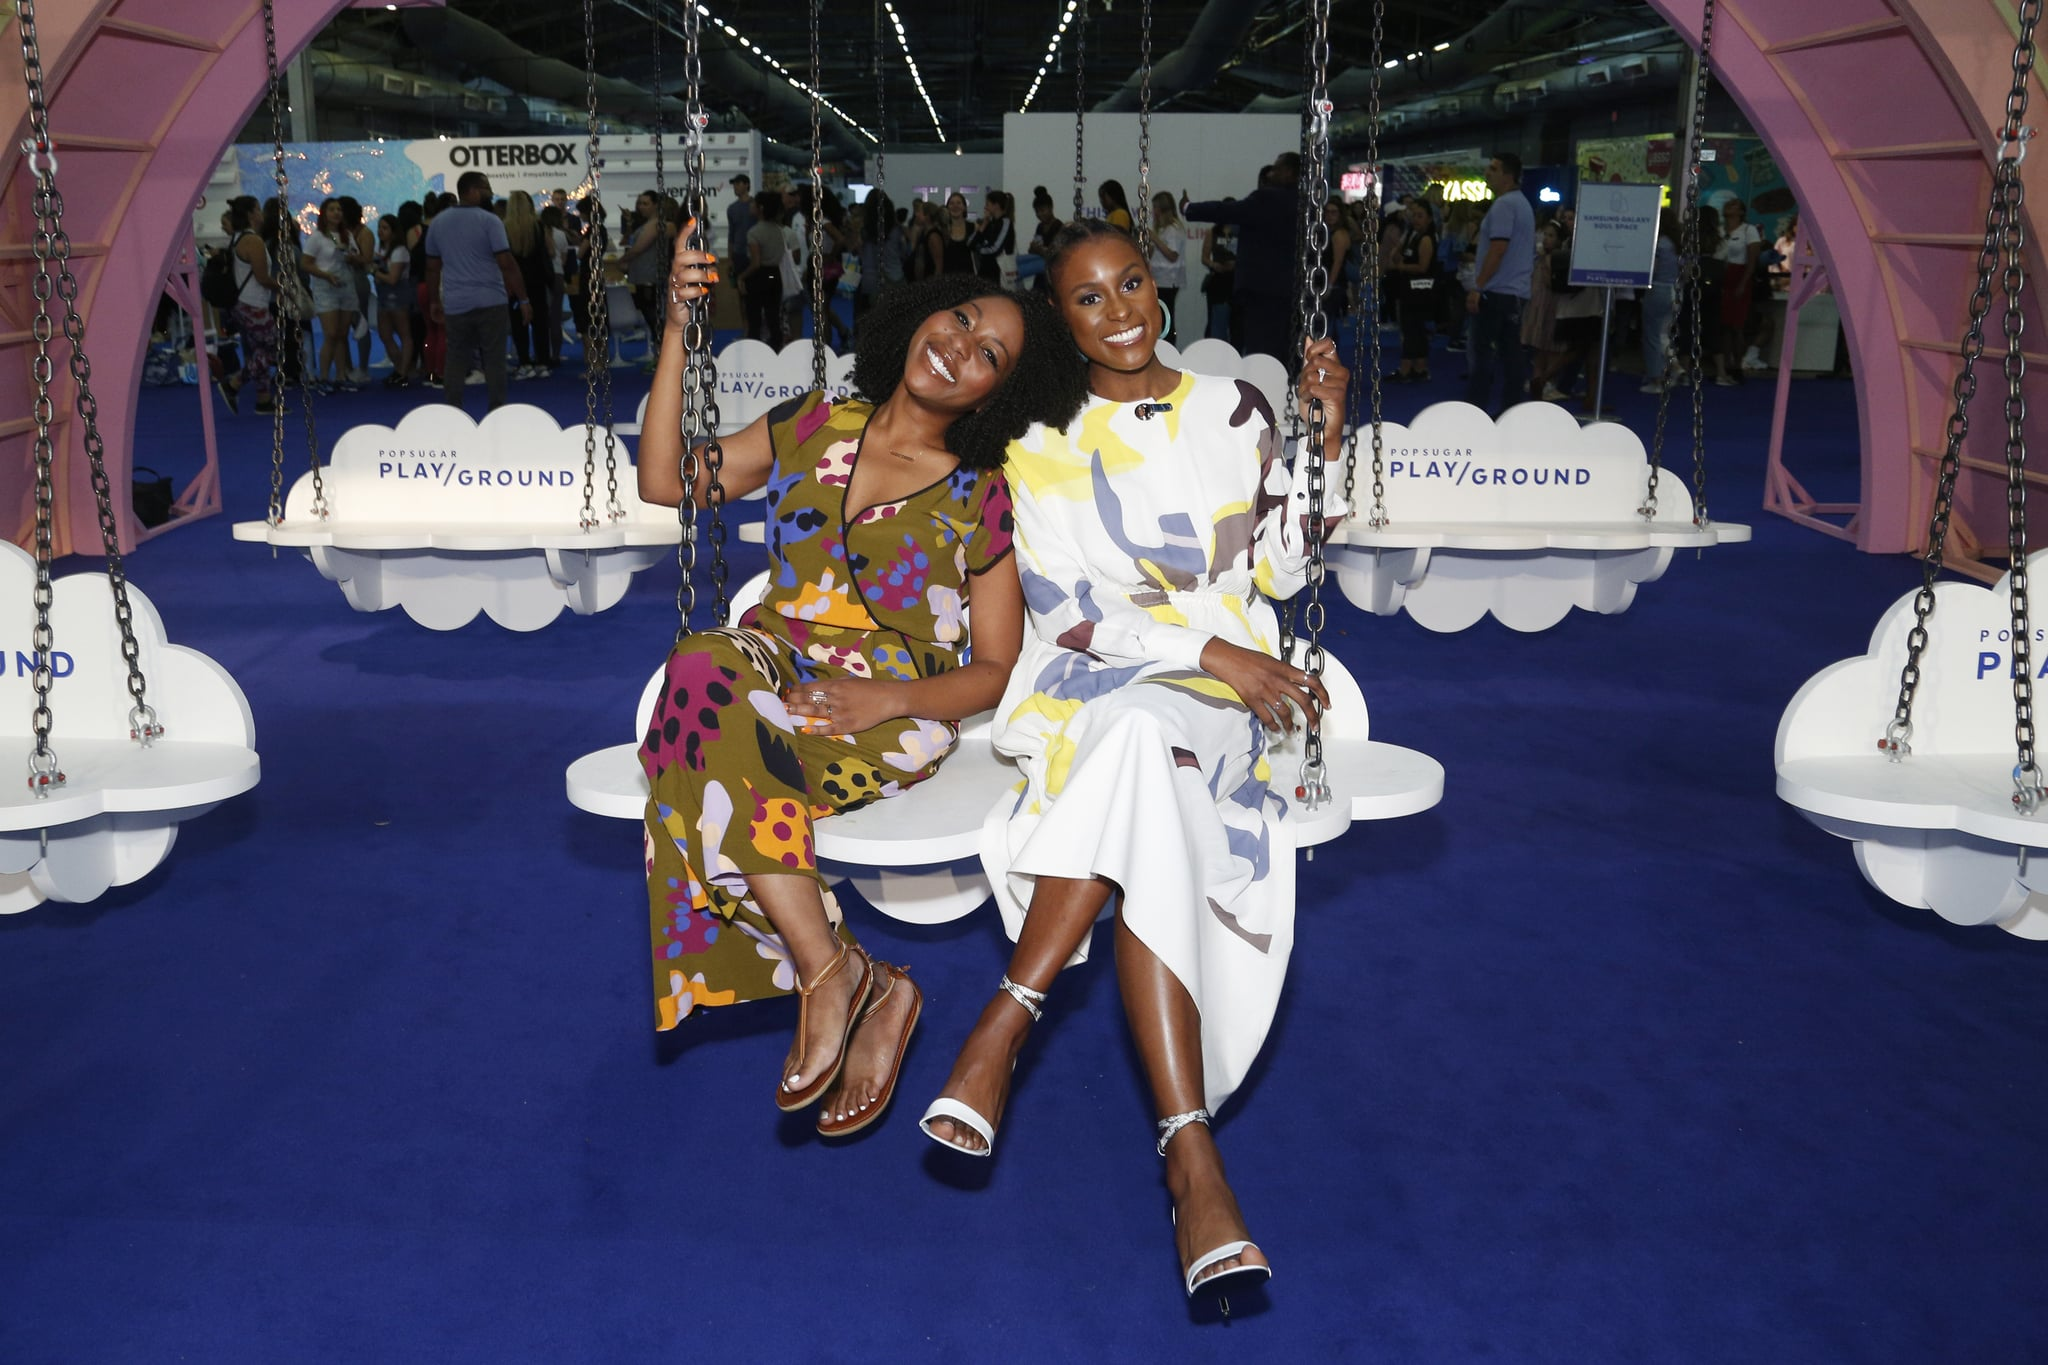 NEW YORK, NEW YORK - JUNE 23: (L-R) Amy Aniobi and Issa Rae attend the POPSUGAR Play/Ground at Pier 94 on June 23, 2019 in New York City. (Photo by Lars Niki/Getty Images for POPSUGAR and Reed Exhibitions )